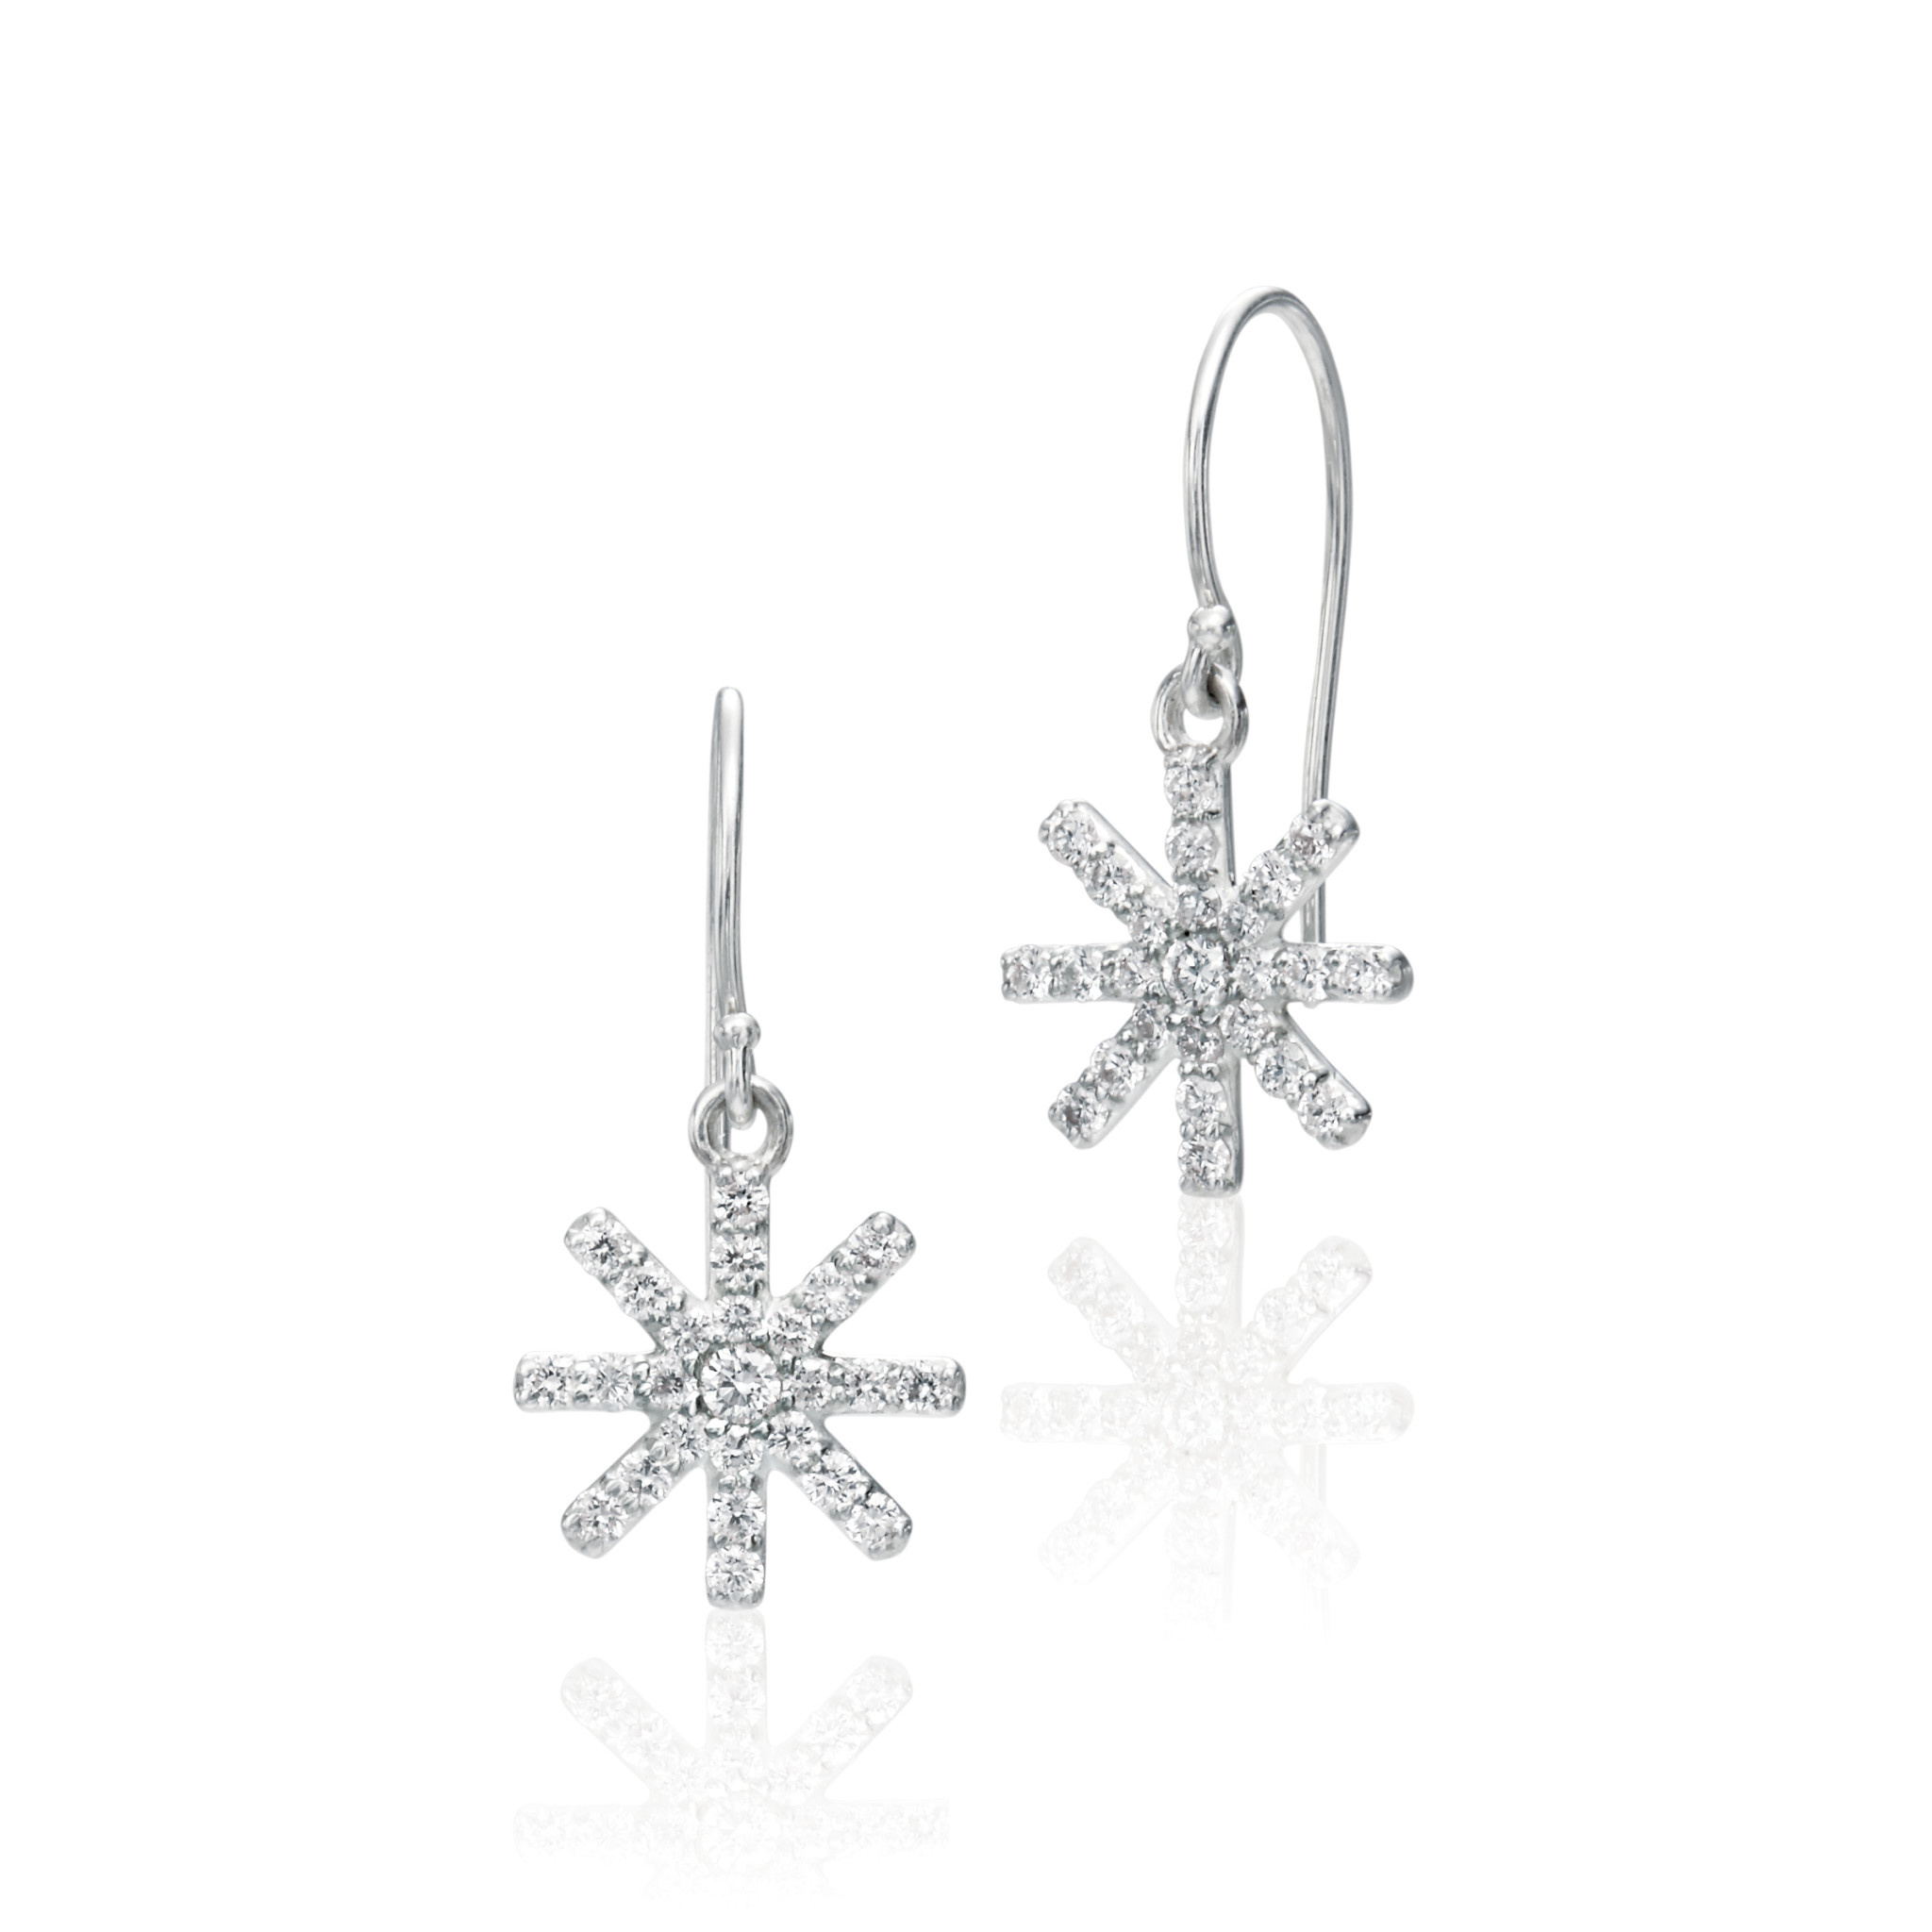 Misahara Starburst Earrings